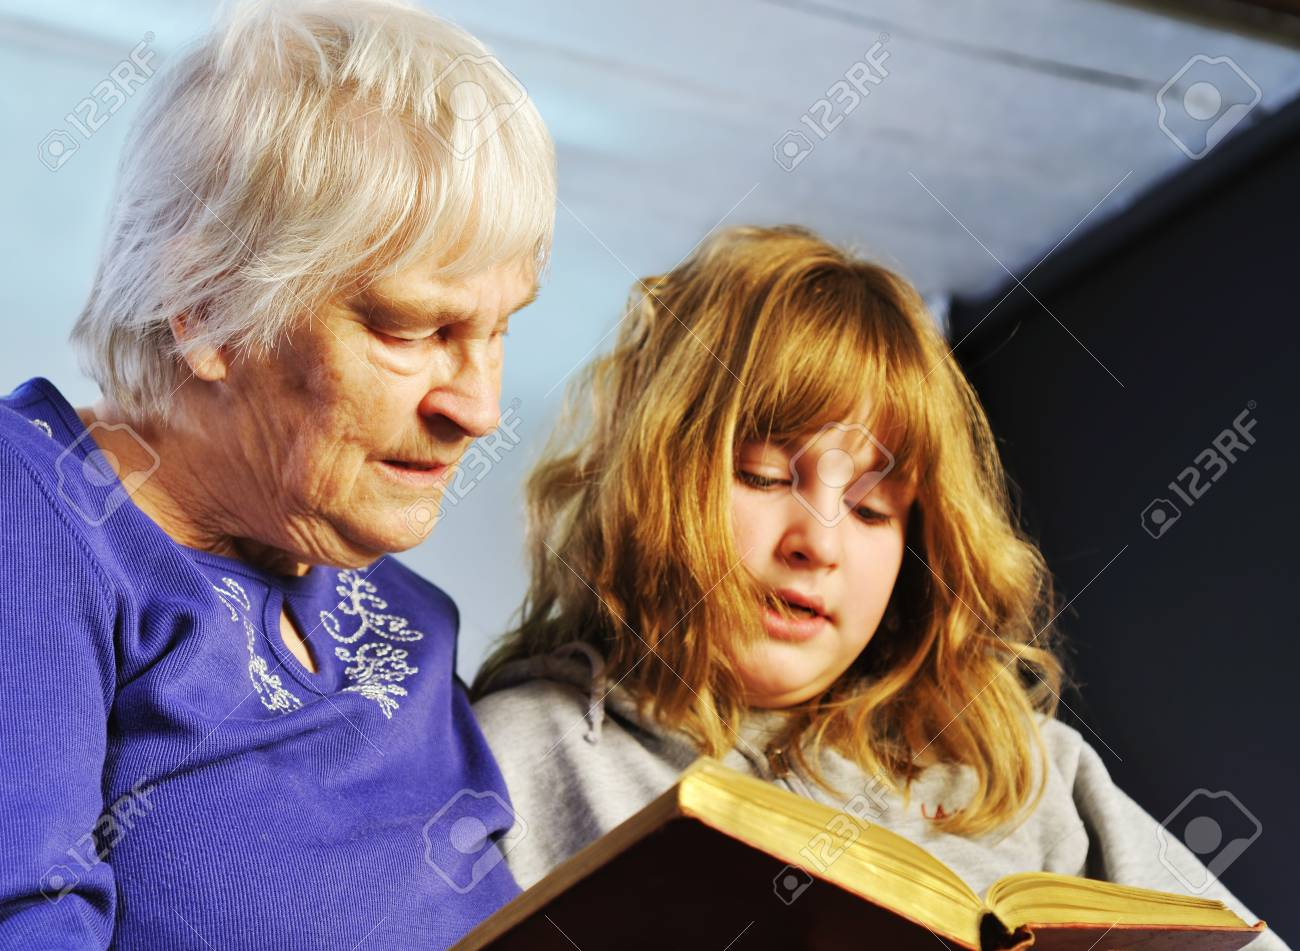 teenage girl and senior woman reading a book together Stock Photo - 13621194